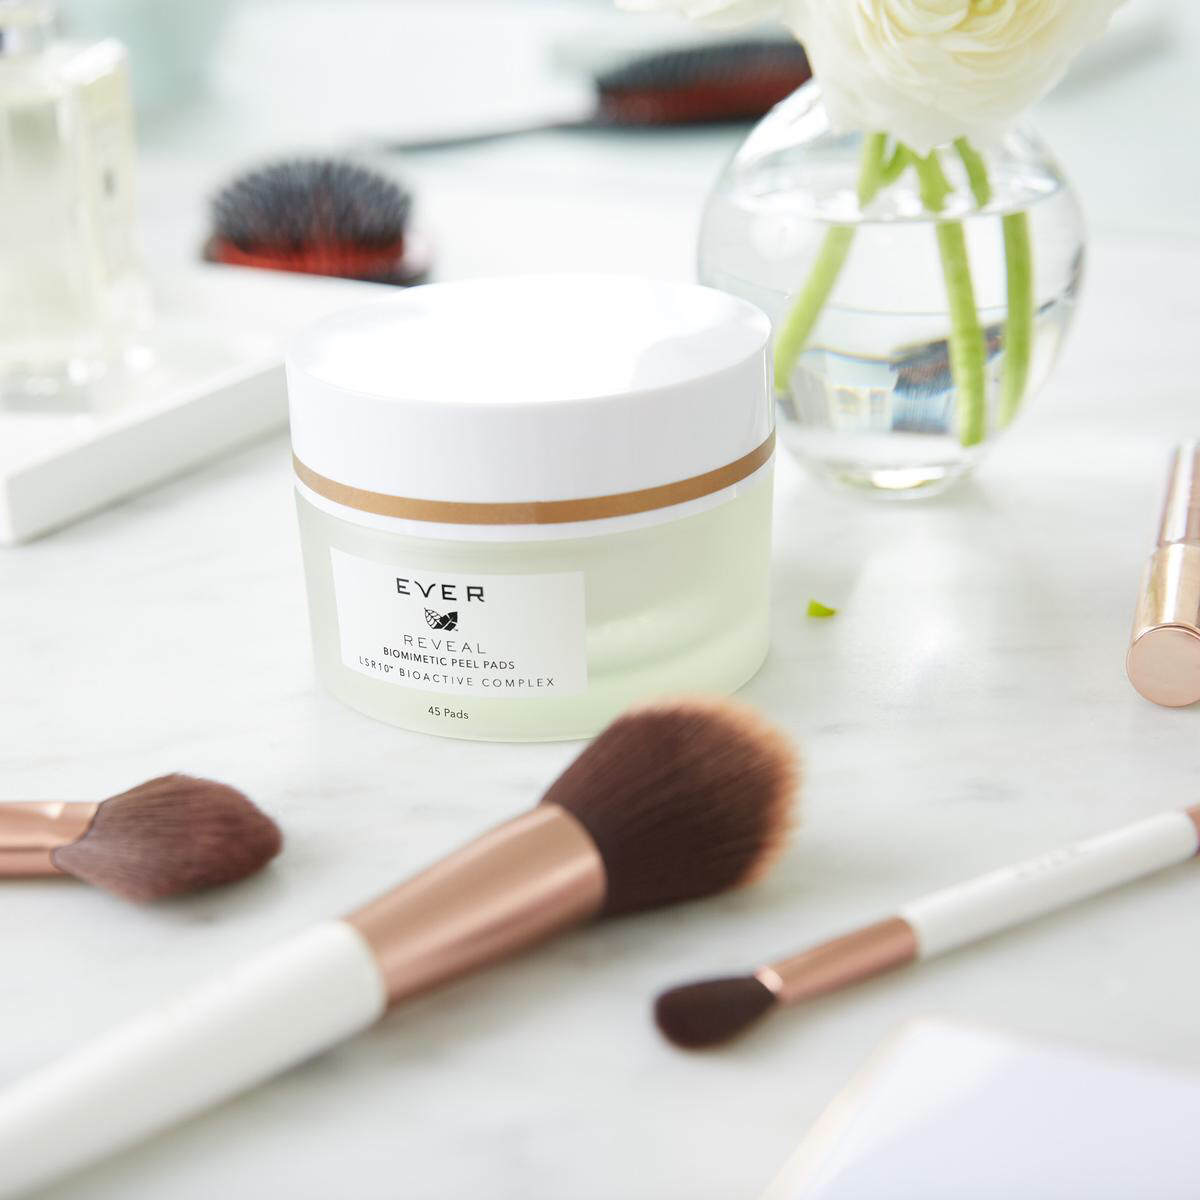 The Skincare Brand That Is Delivering Anti-Aging Results In 4 Steps